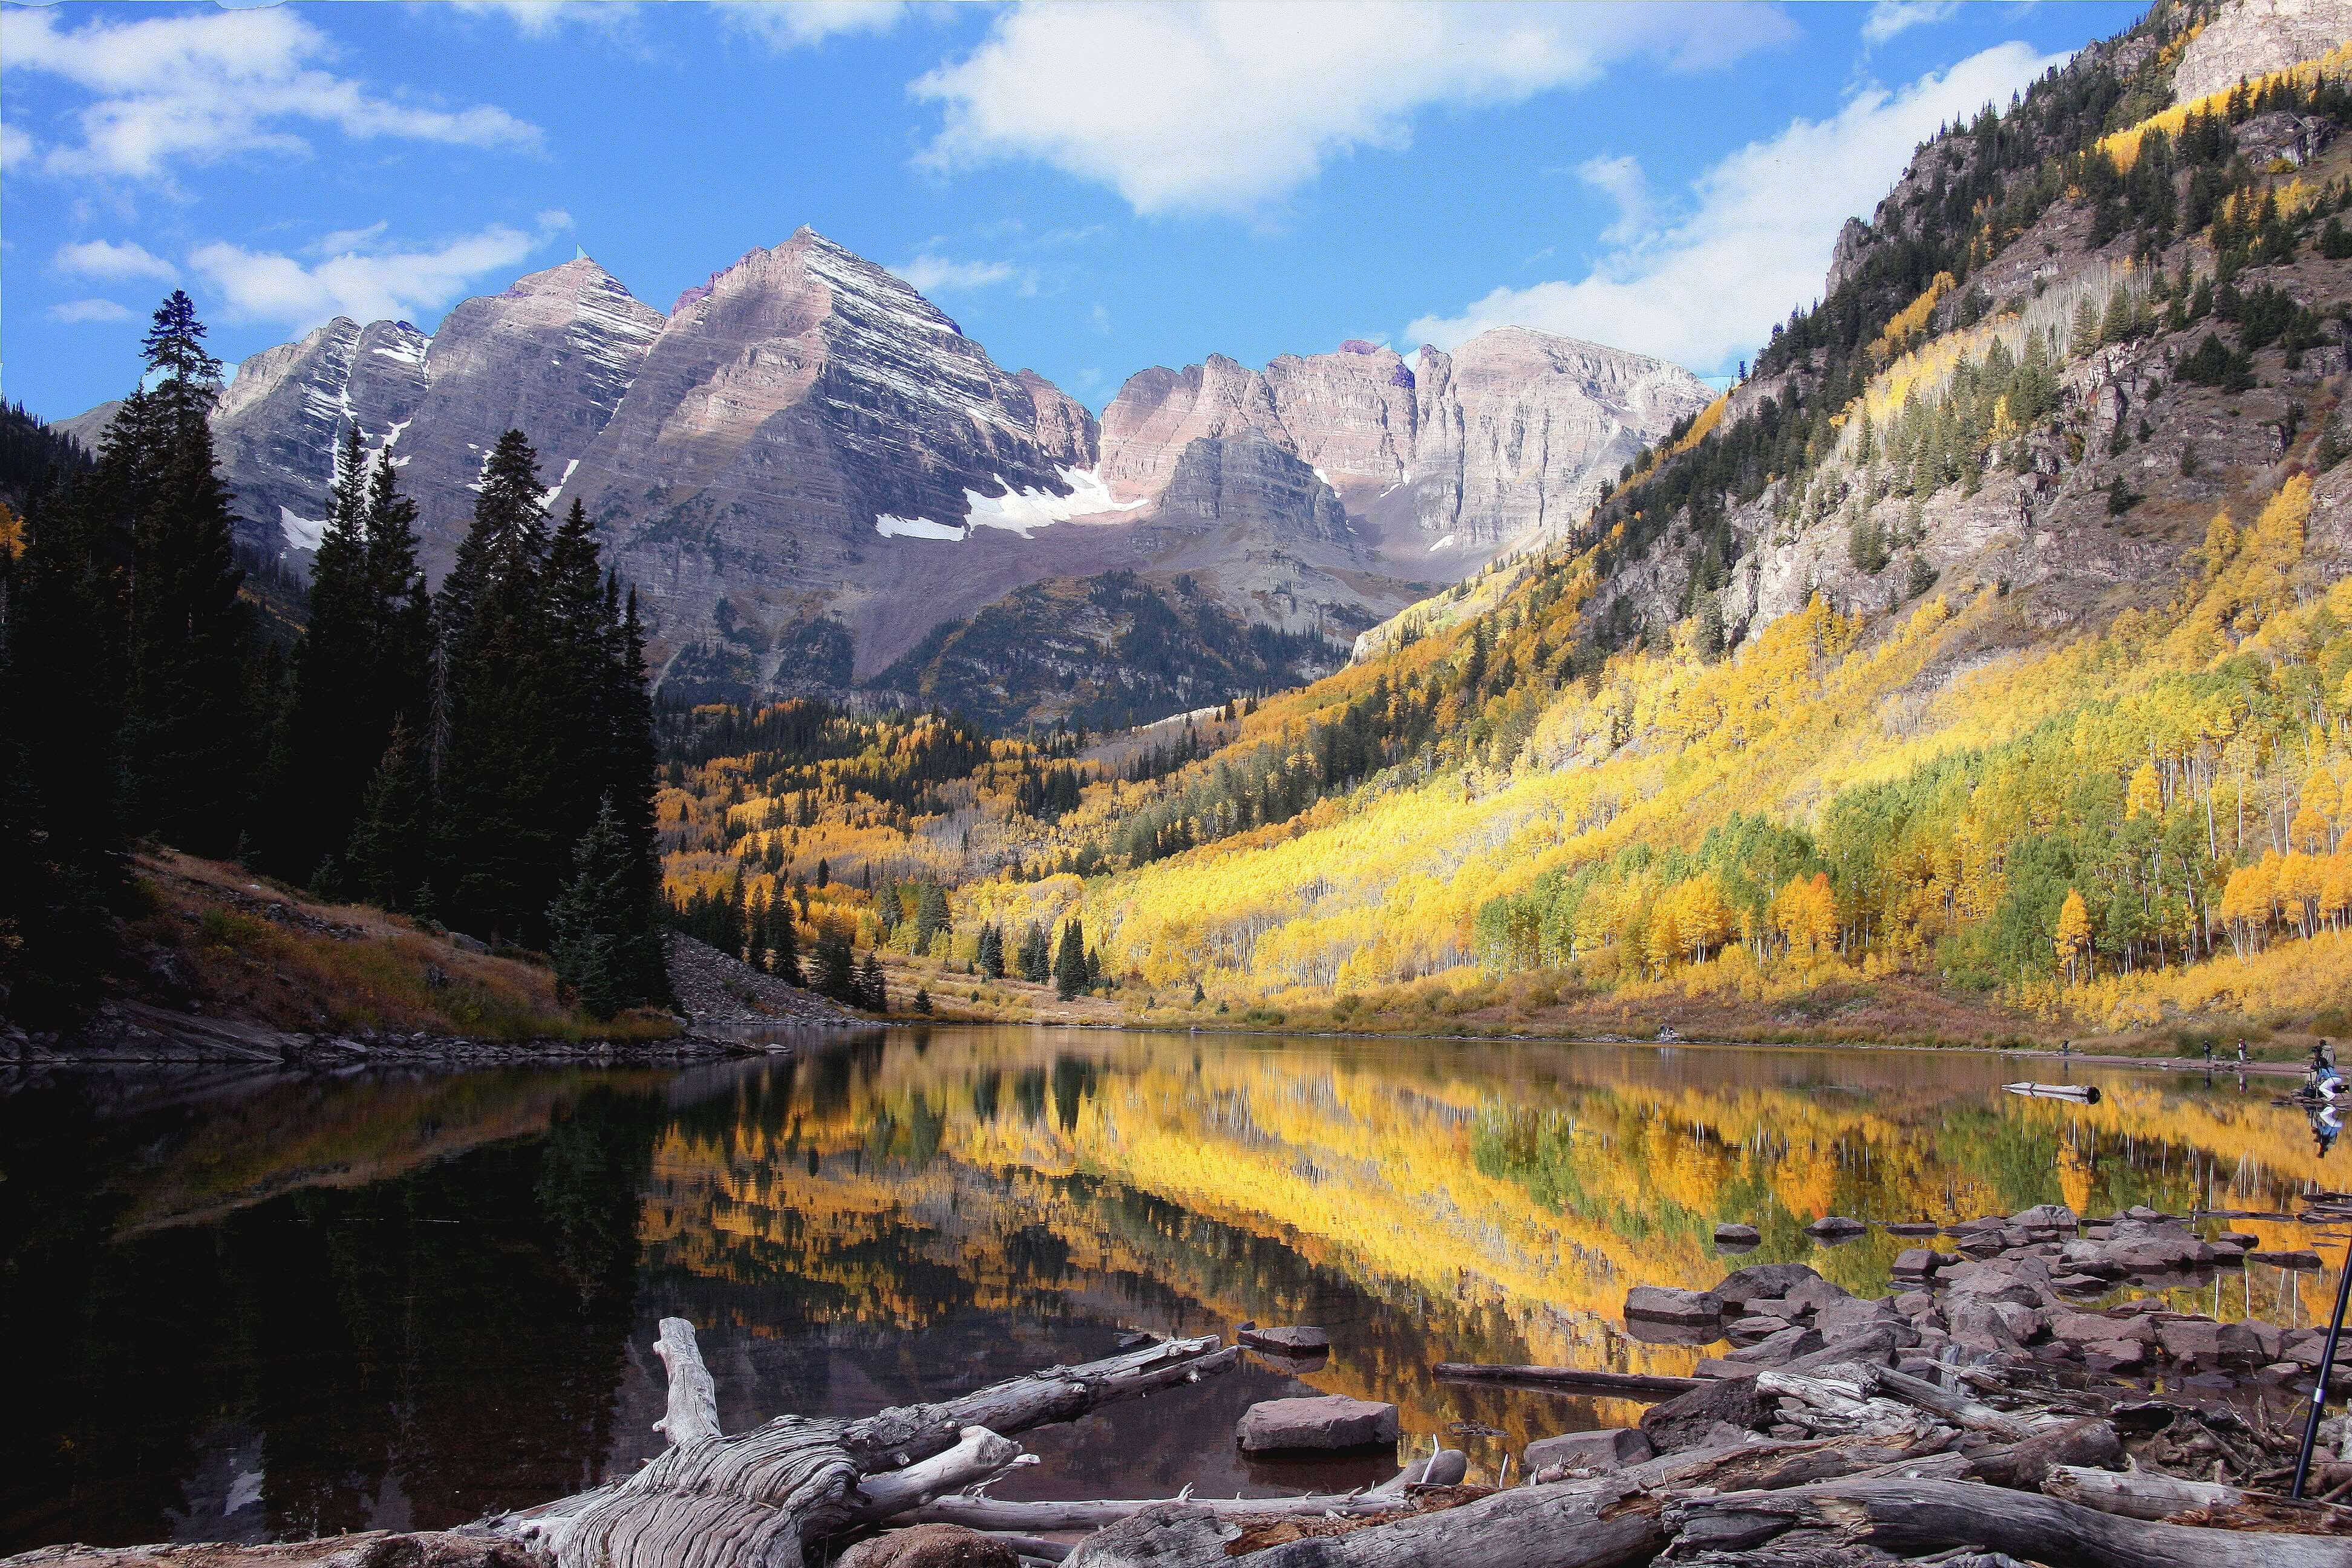 Maroon Bells Lake Wedding Location outside of Aspen